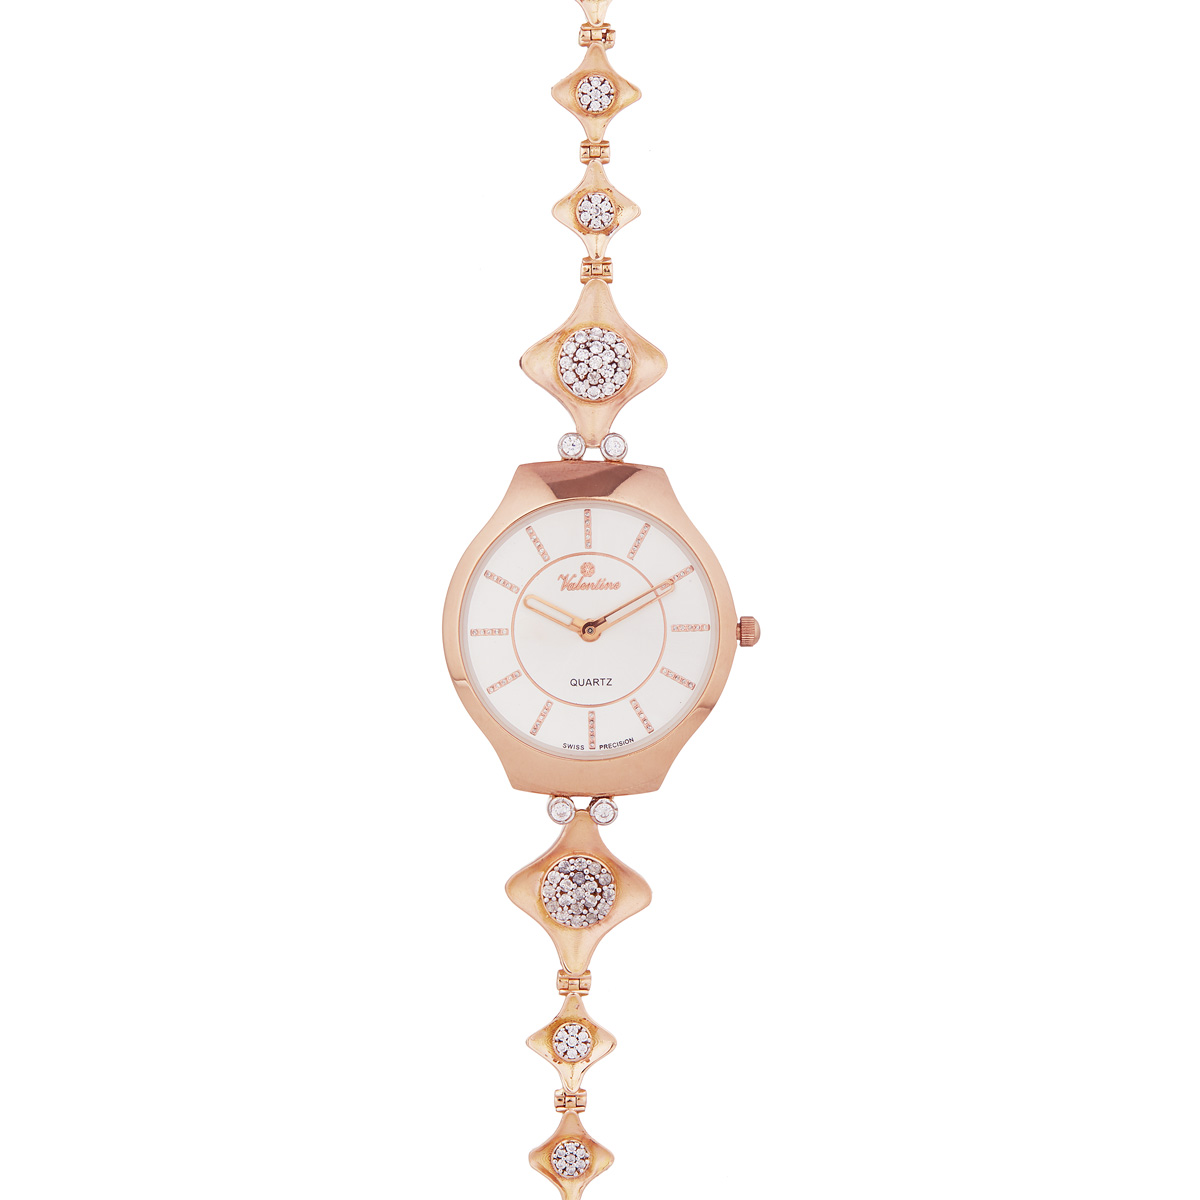 The Elonna Women's Watch